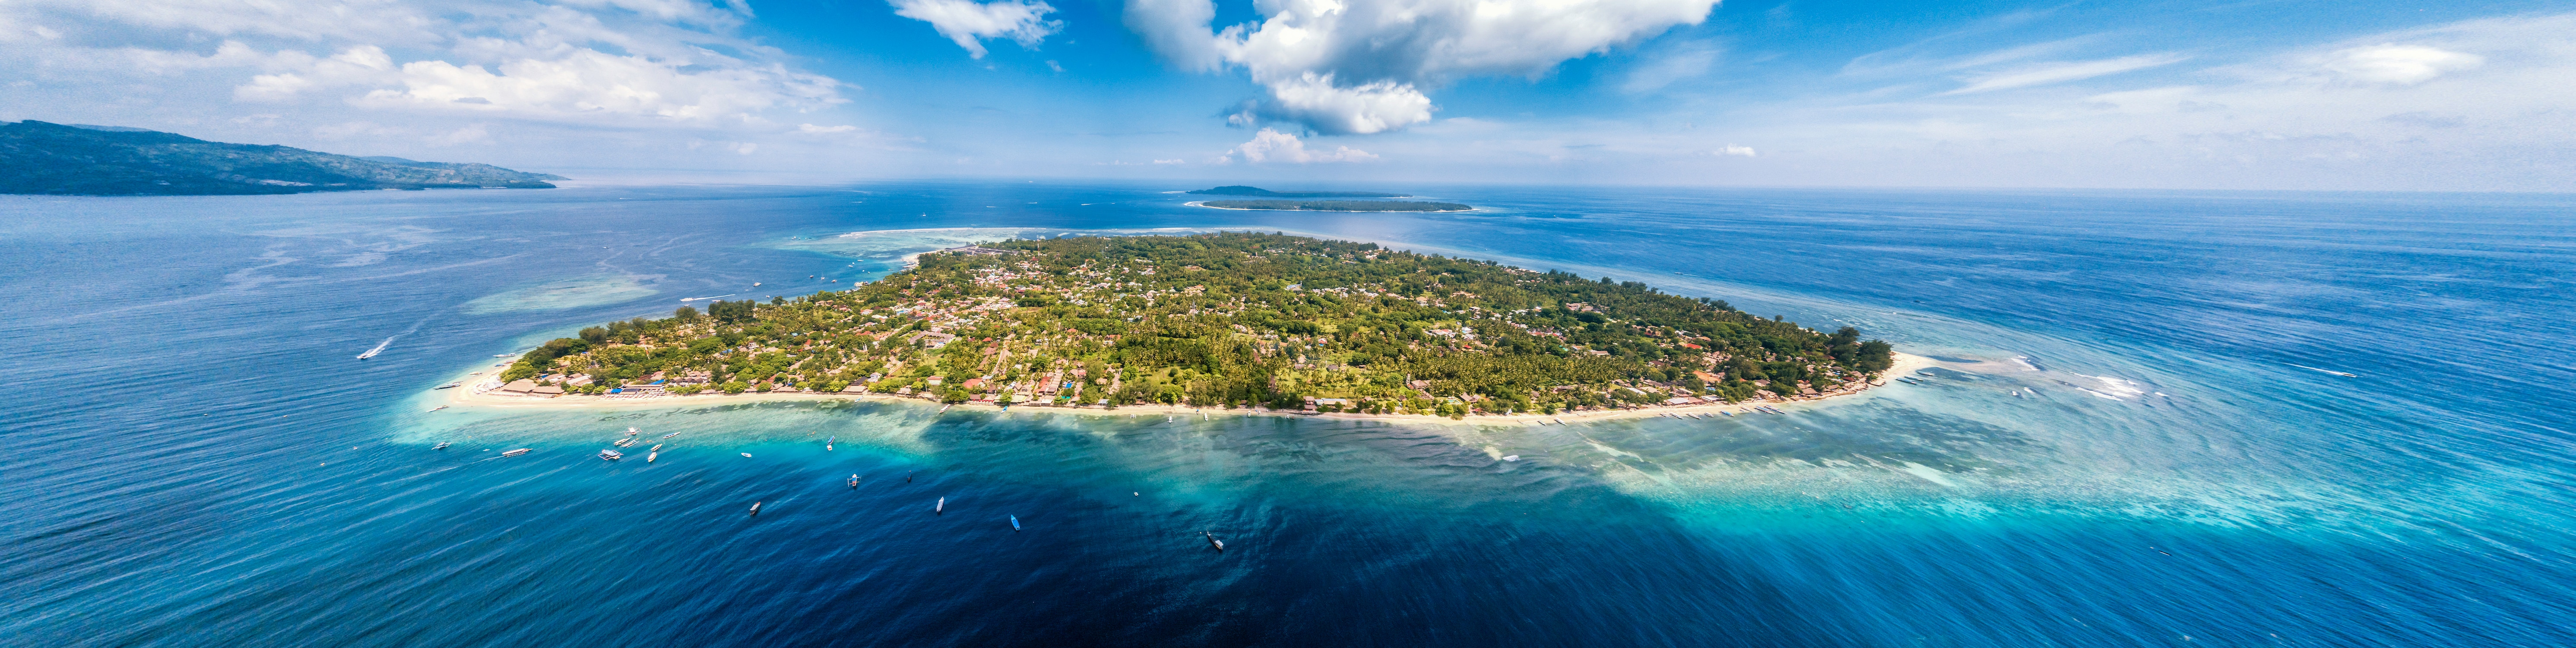 Gili Islands: Which one should I go to